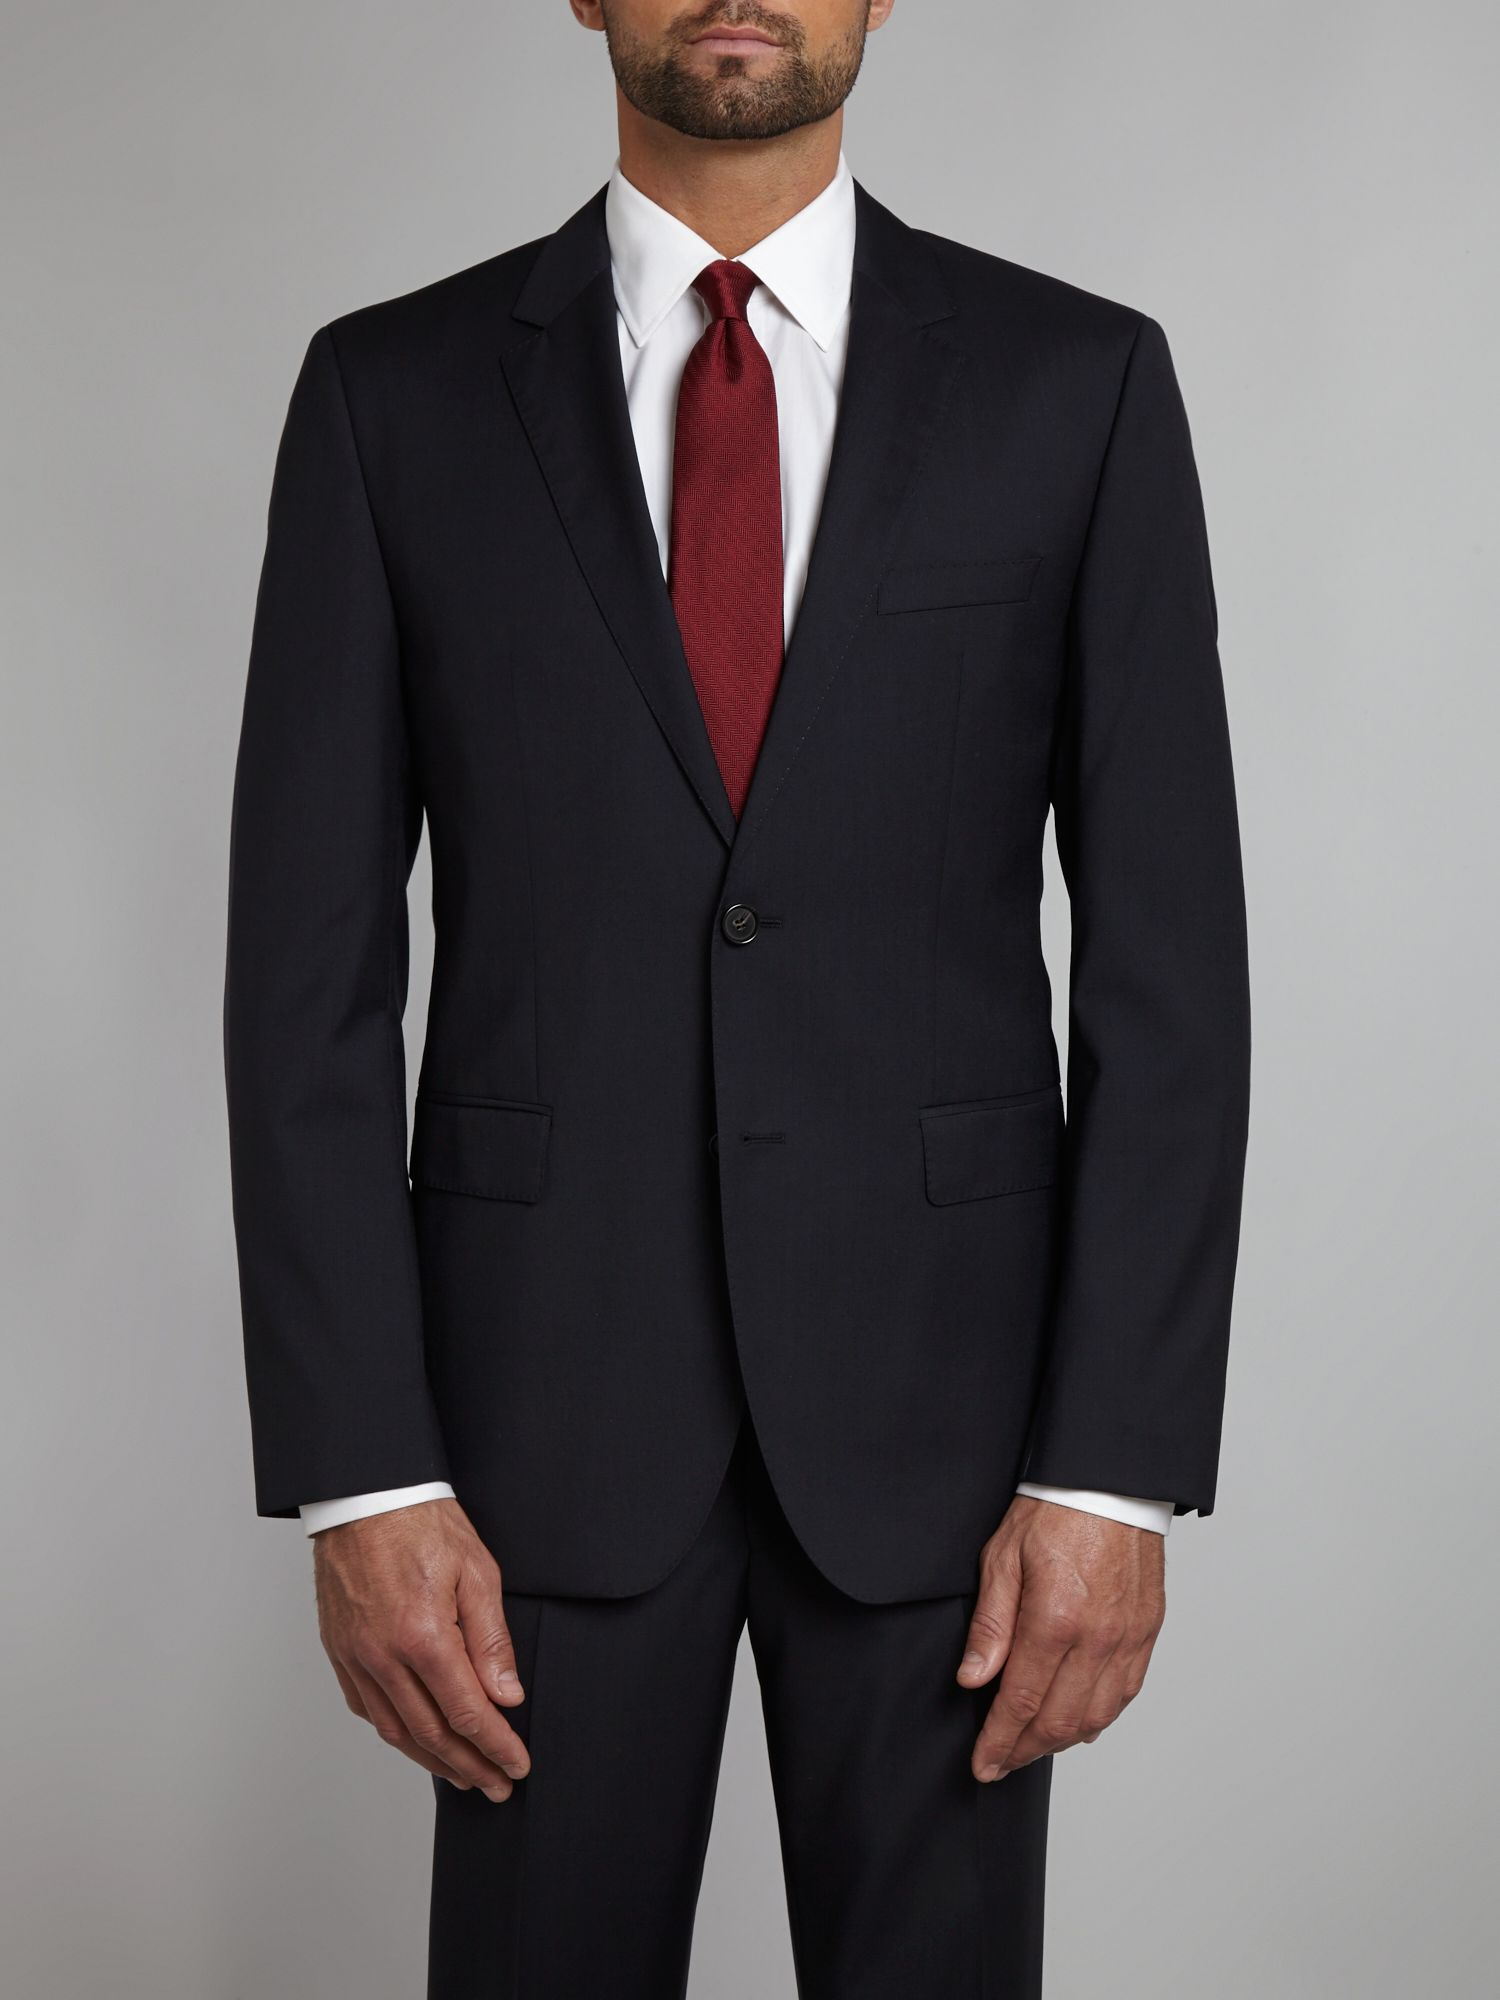 The Rider regular fit suit jacket